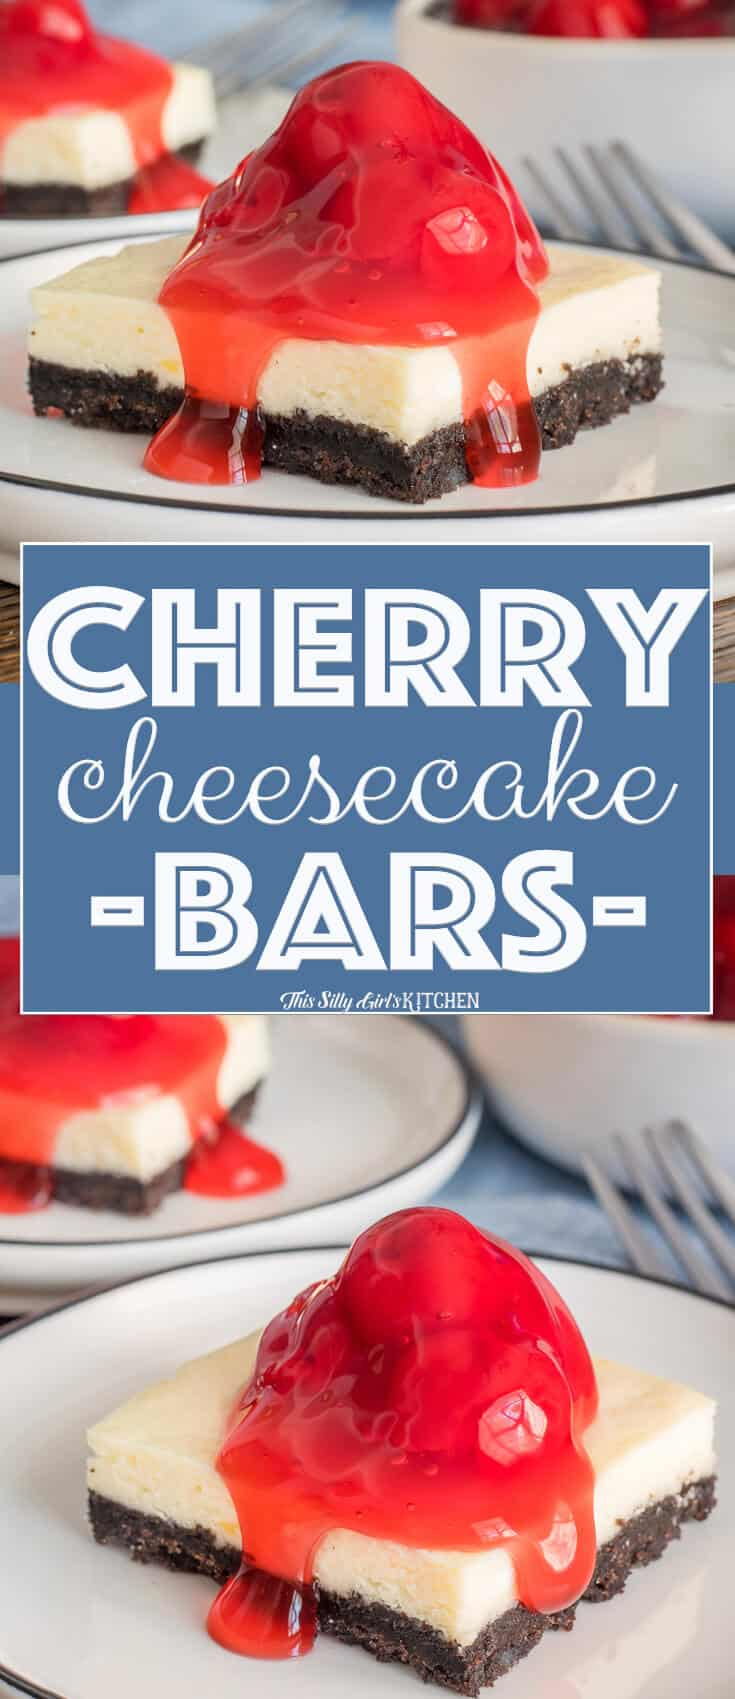 Cherry #Cheesecake Bars, silky cheesecake on an addictive #Oreo crust, topped with cherries! #Recipe from ThisSillyGirlsKitchen.com #cherrycheesecake #cheesecakebars #dessert